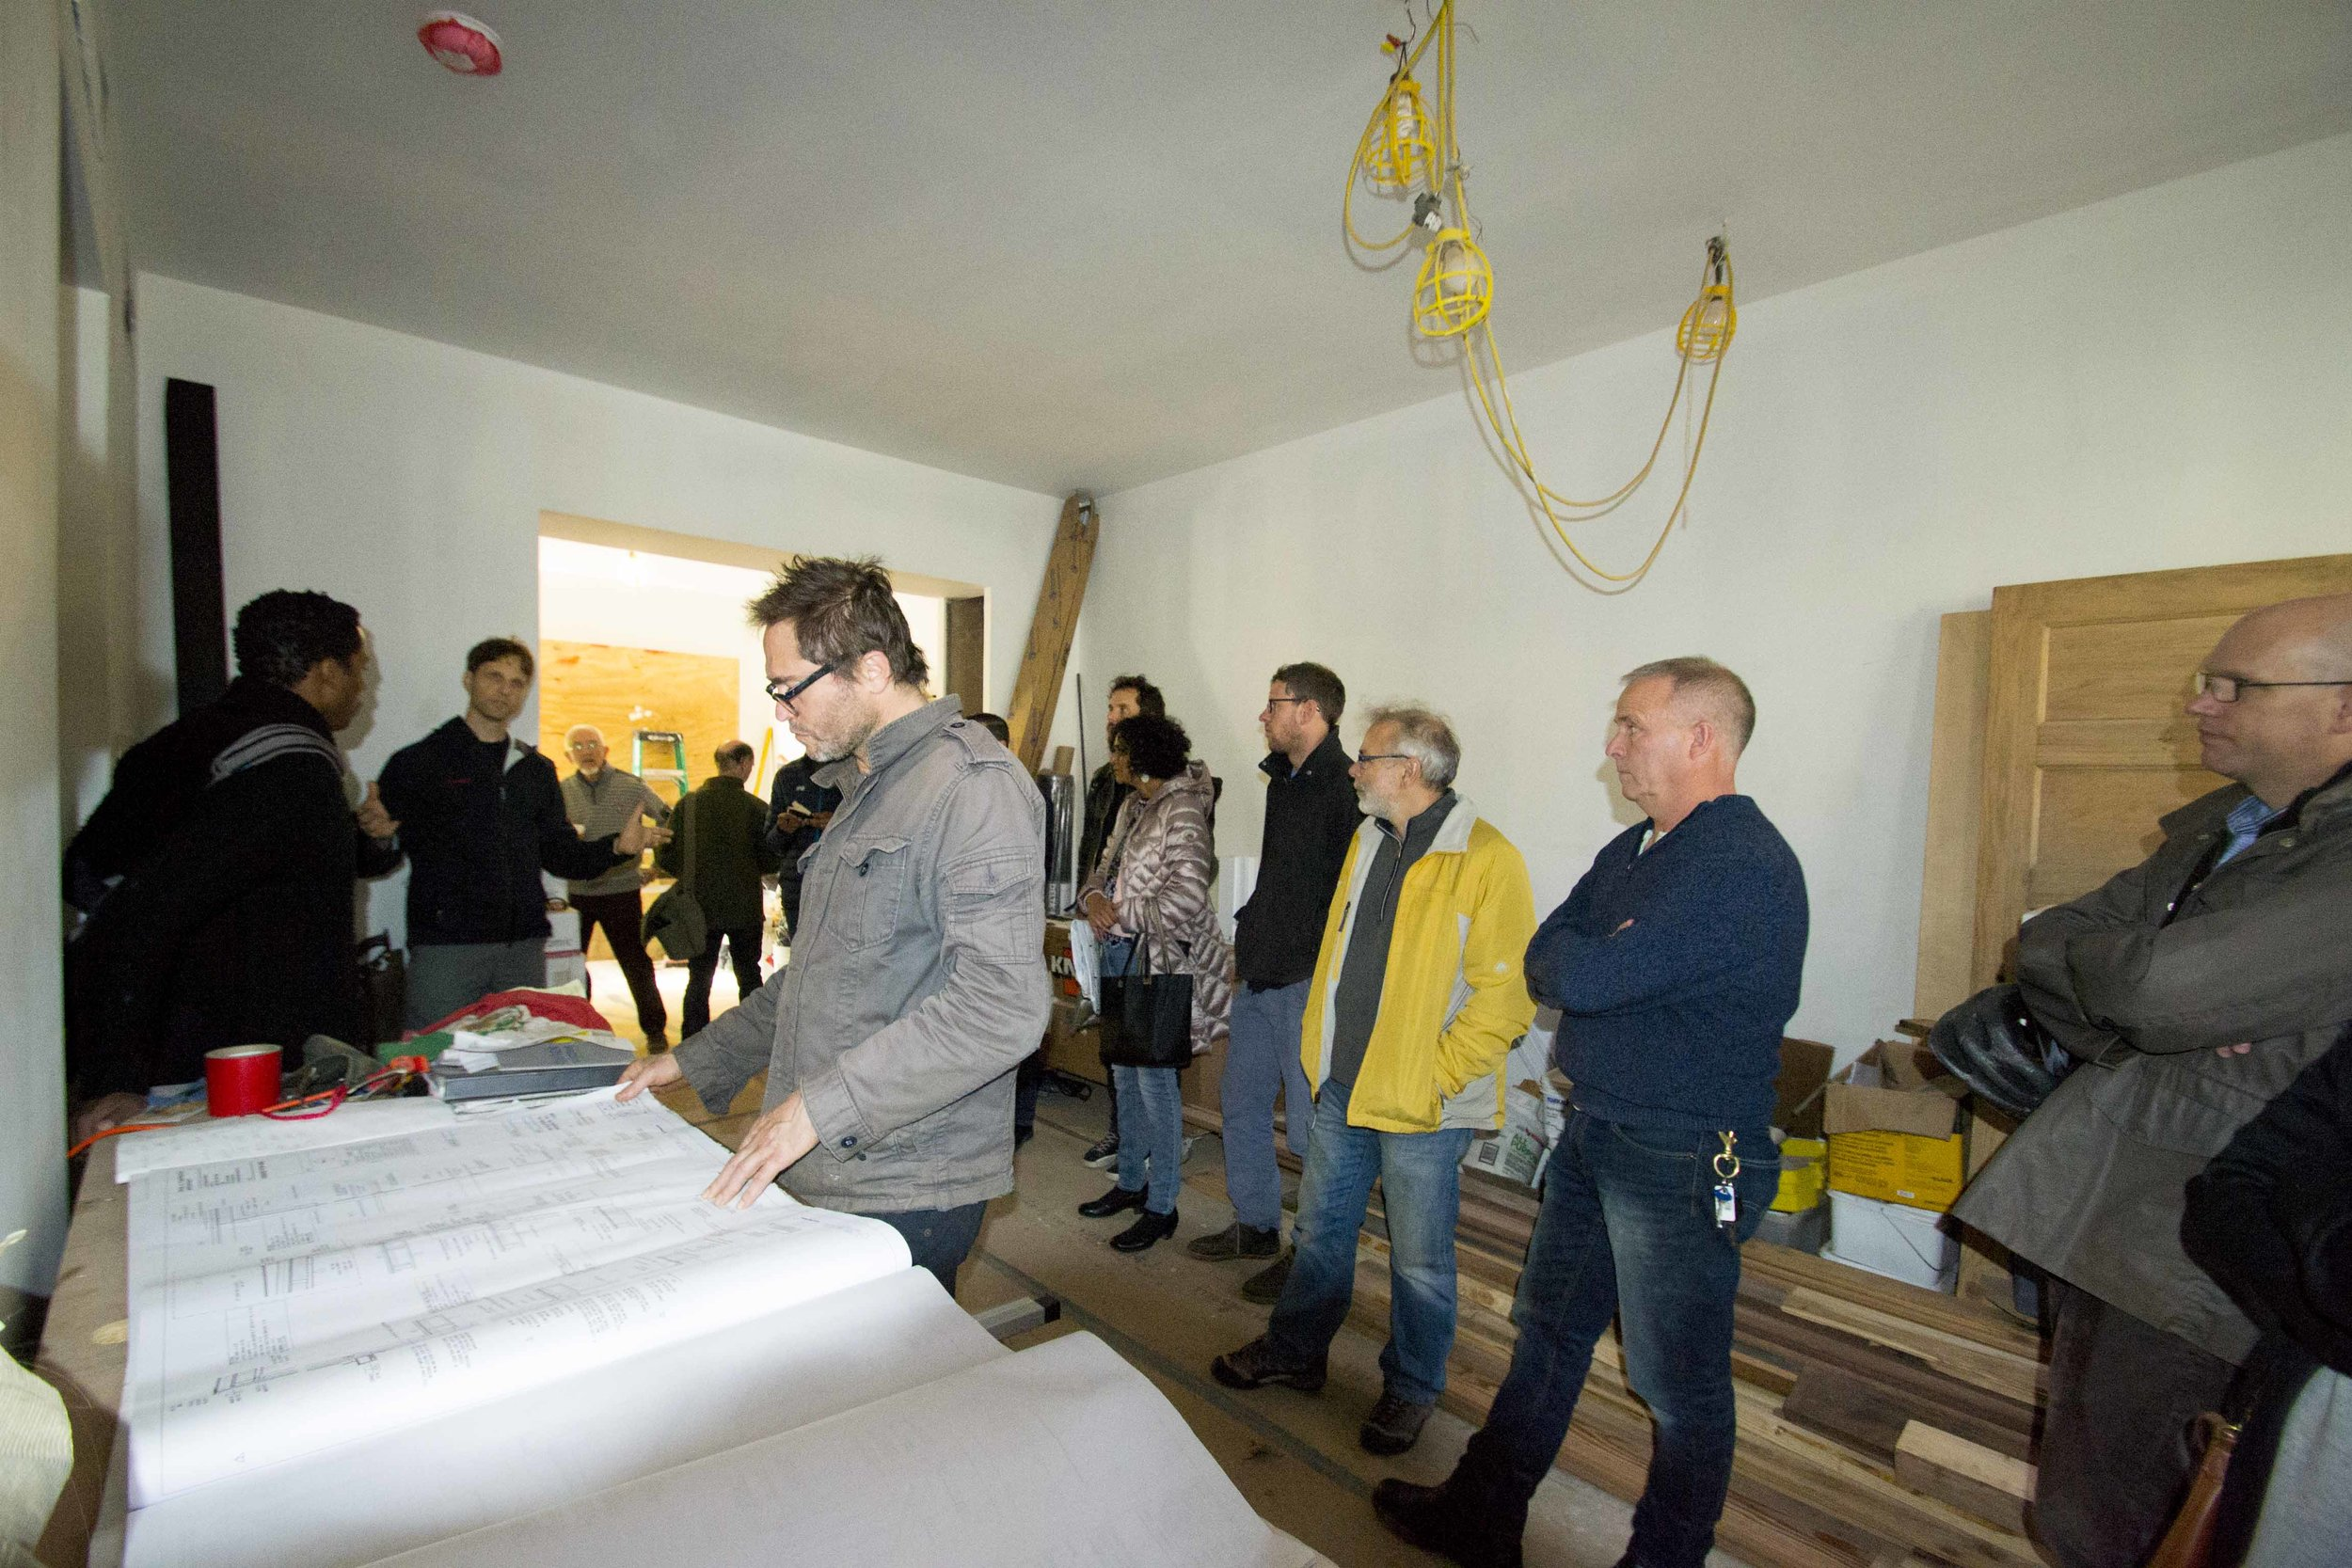 20161111__NY PASSIVE HOUSE DAYS_OPEN HOUSE_PAUL CASTRUCCI ARCHITECT__0032_lowres.jpg